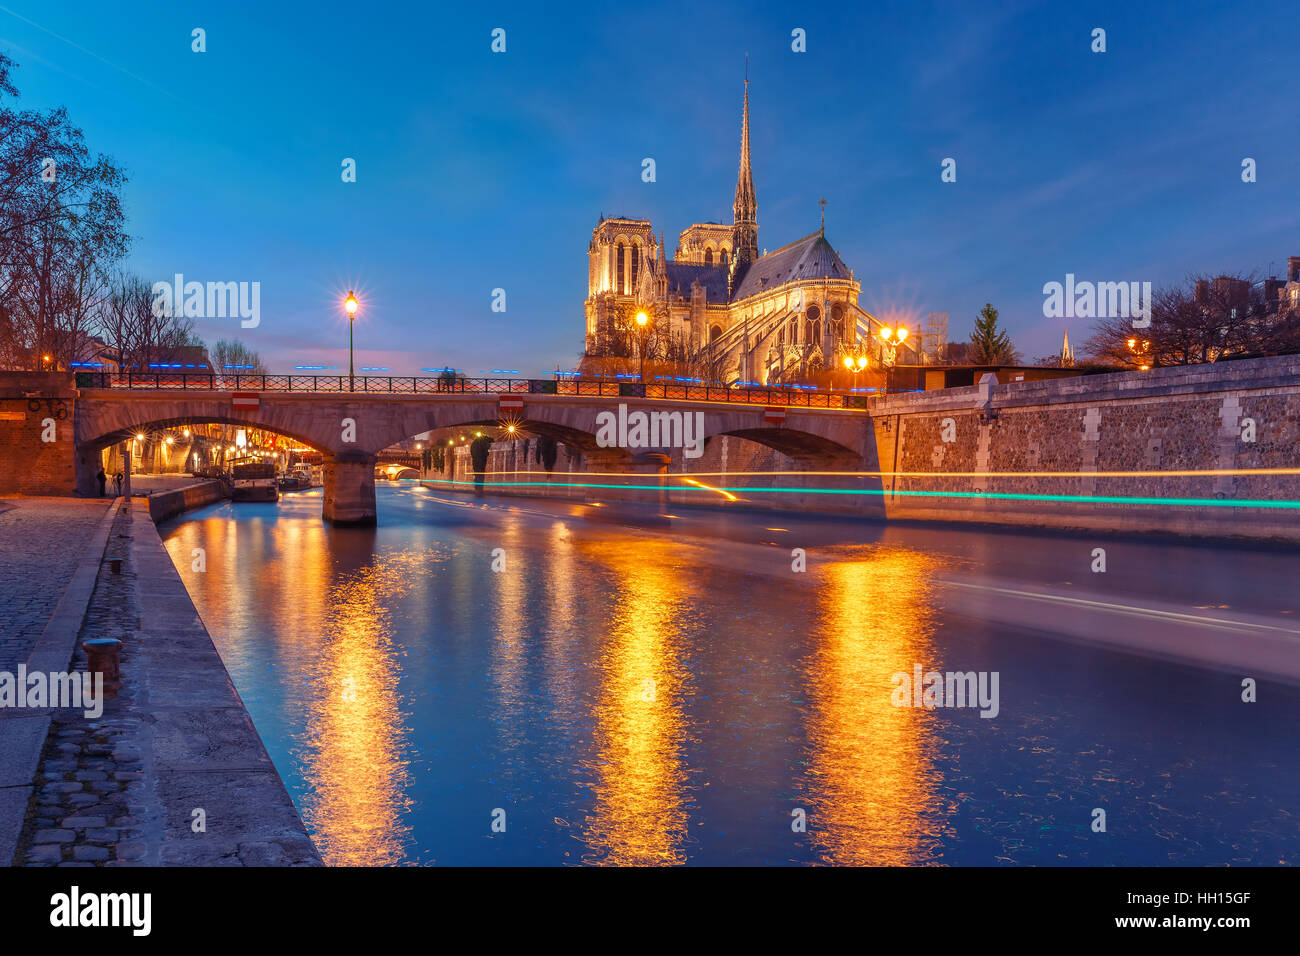 Cathedral of Notre Dame de Paris at night, France Stock Photo